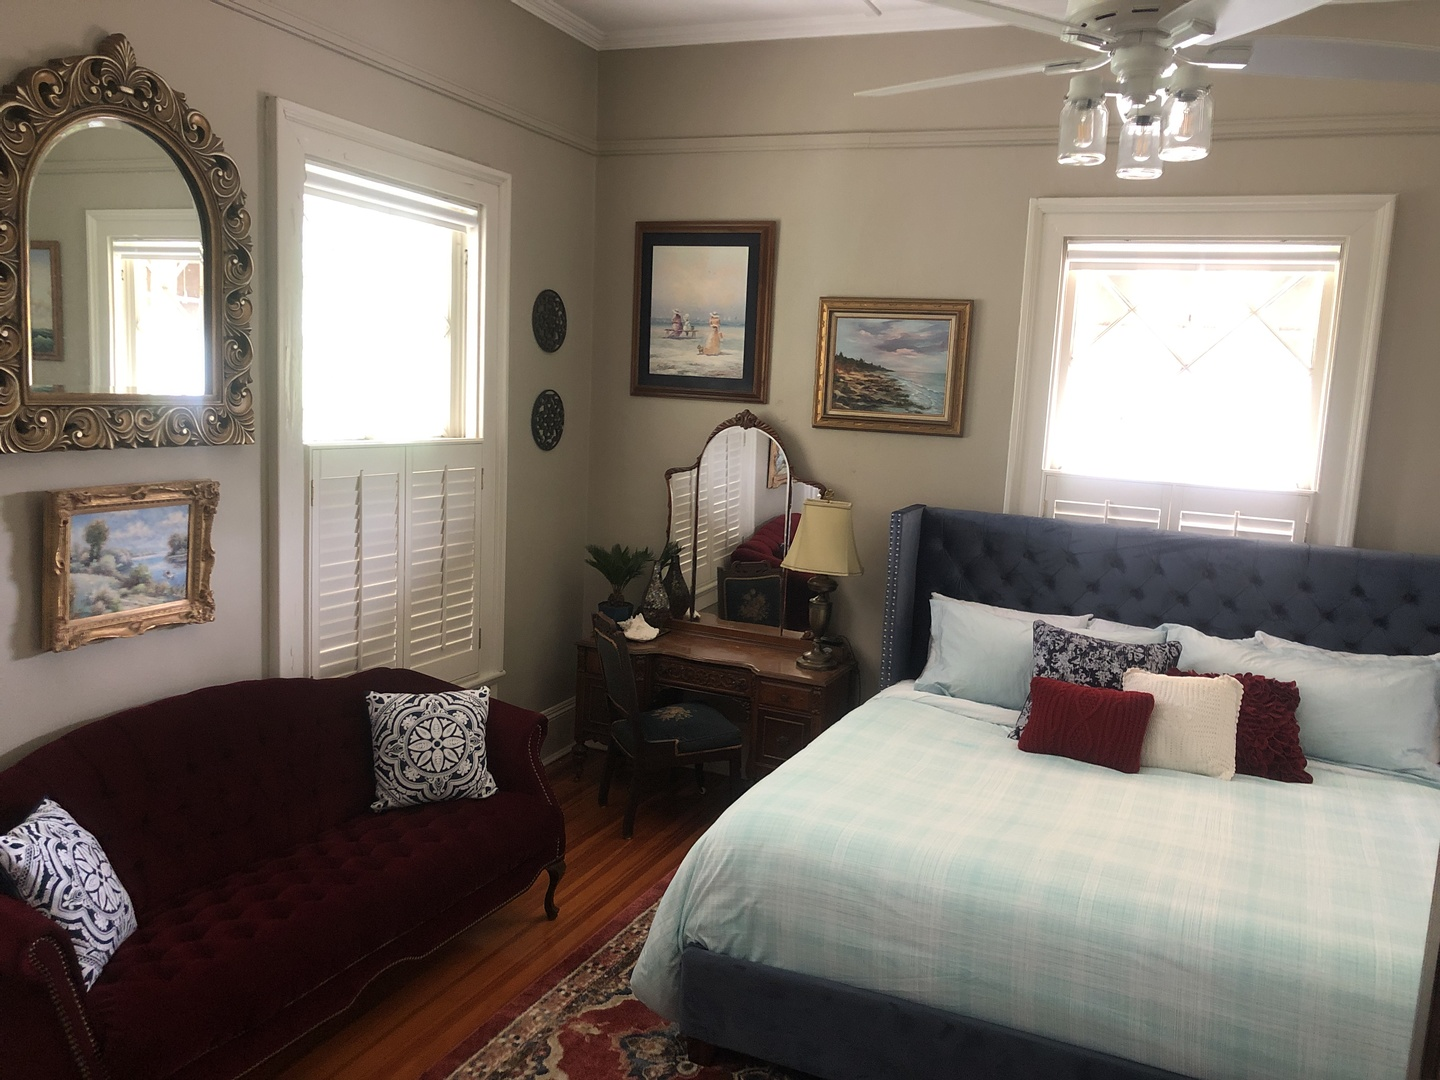 A bedroom with a large bed in a hotel room at Heritage House Lodging & Events.